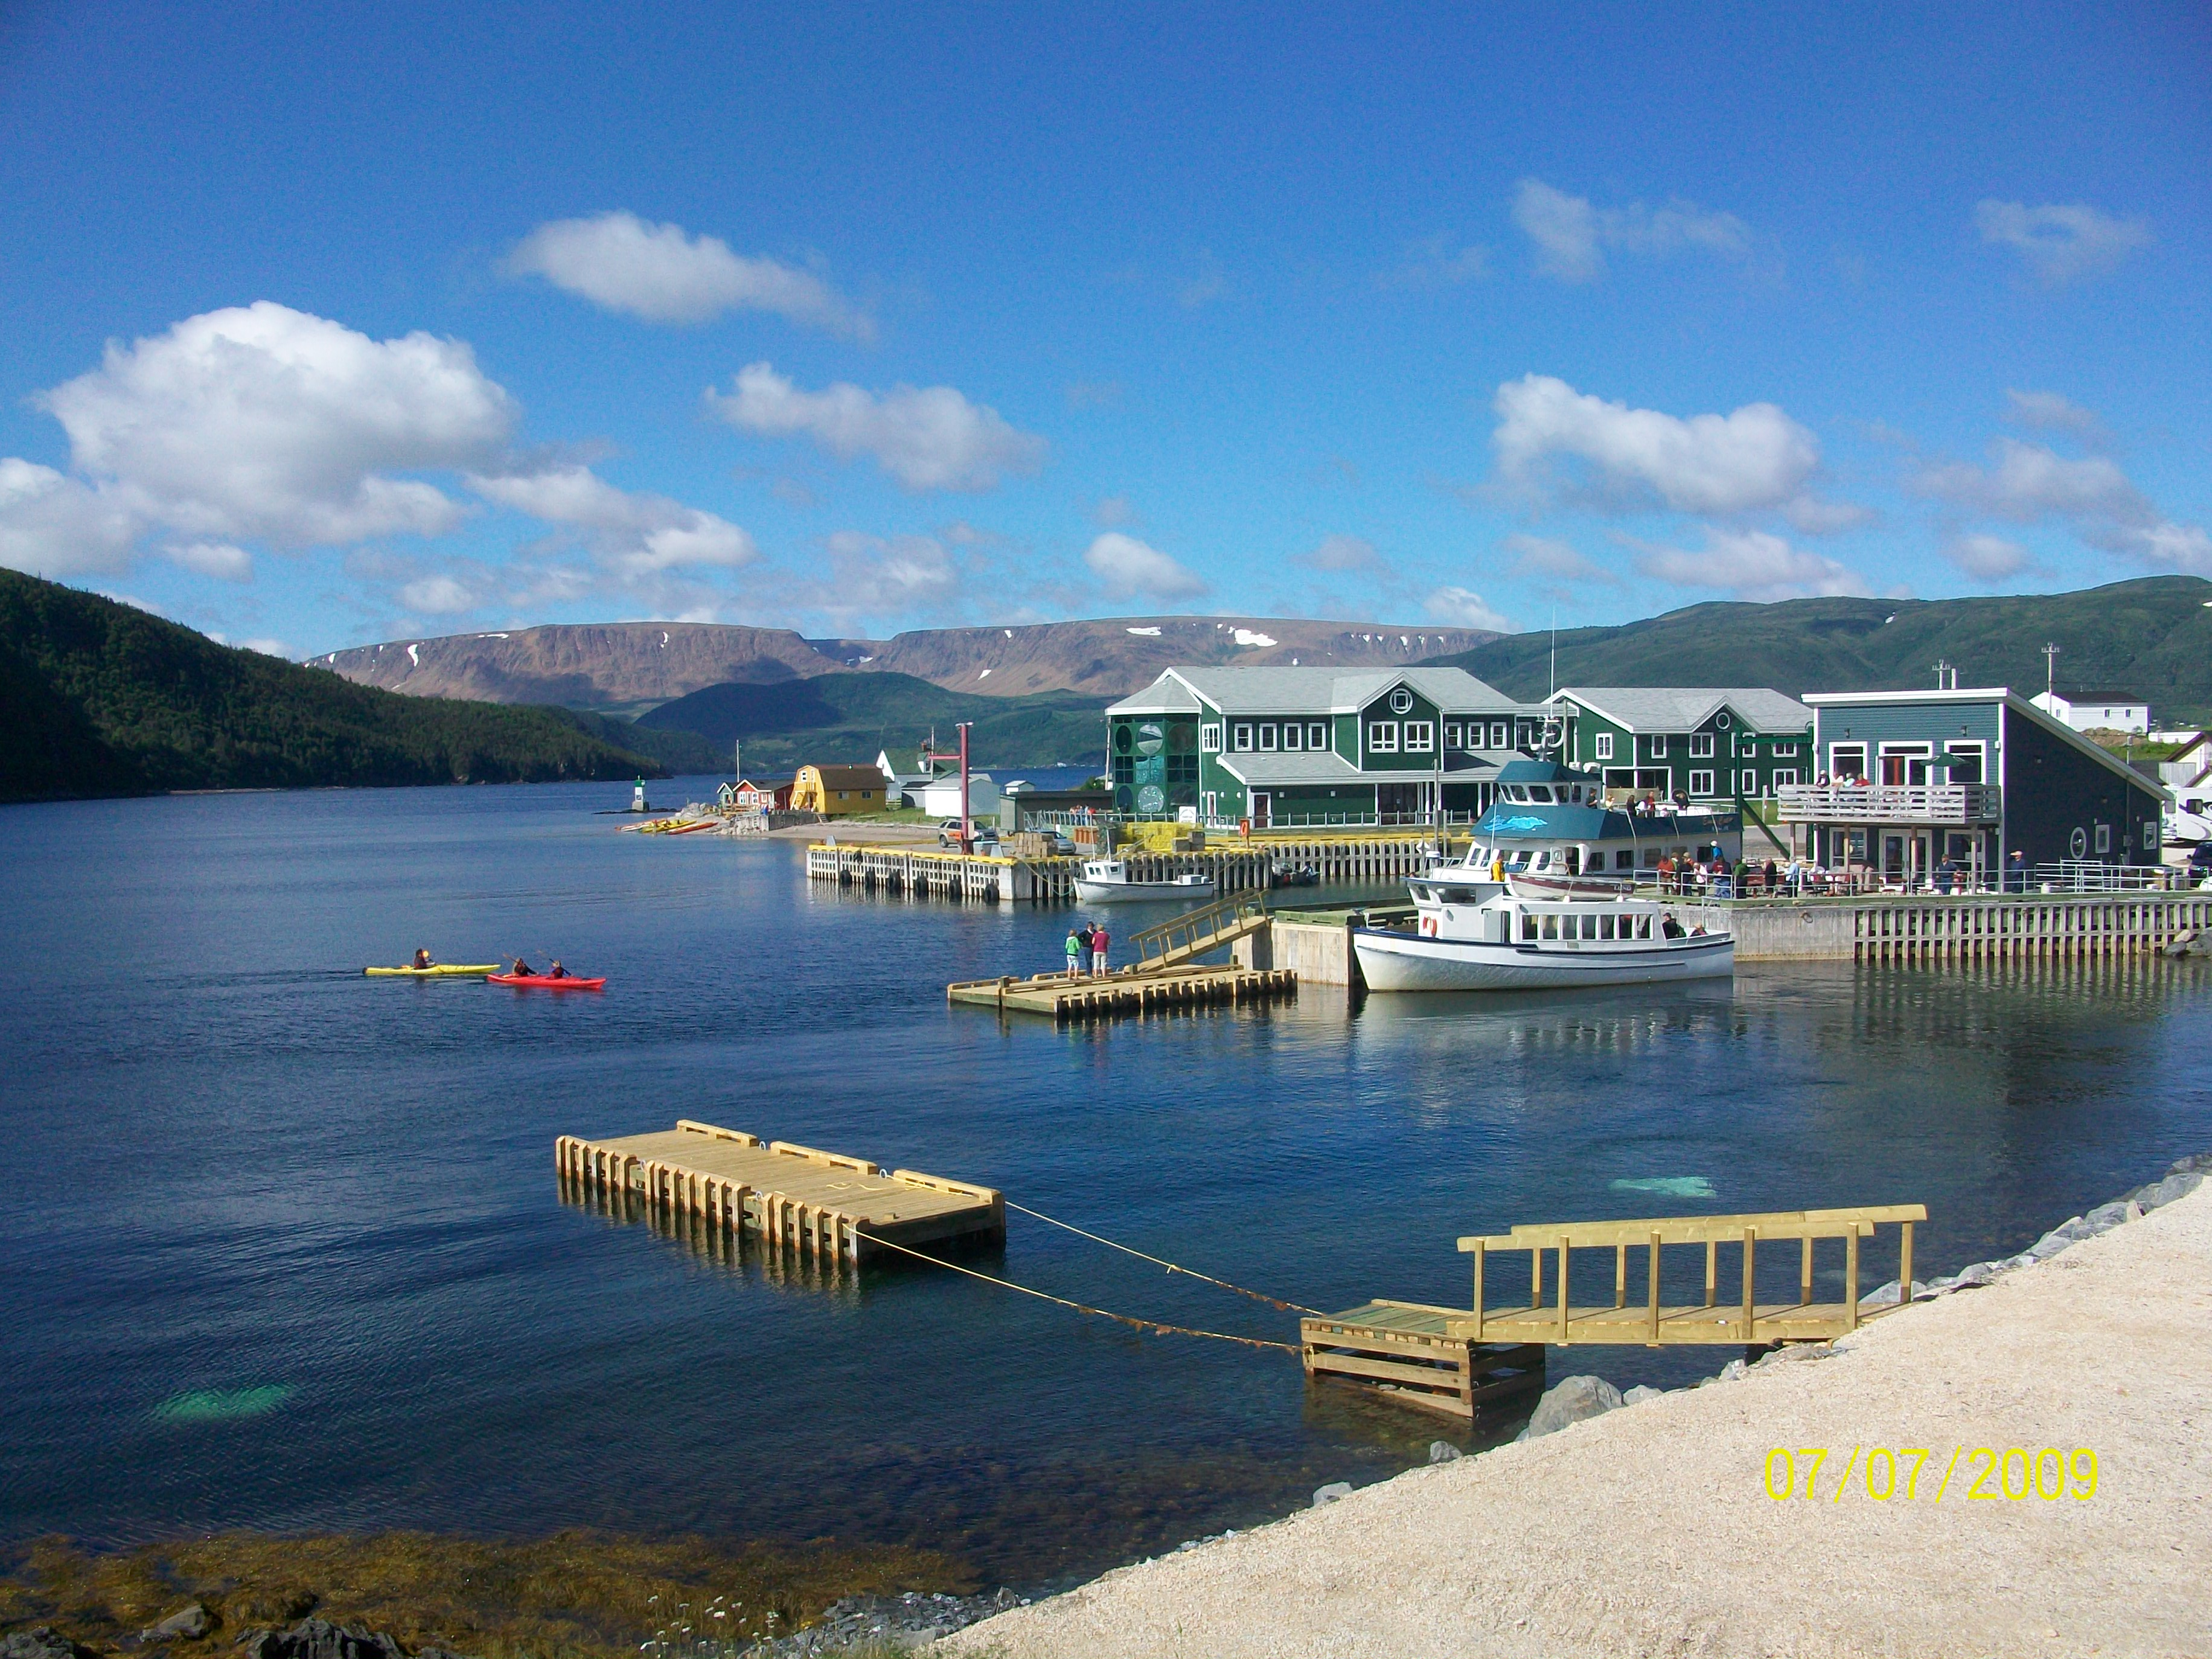 Come Join us on the Bonne Bay Boat Tours